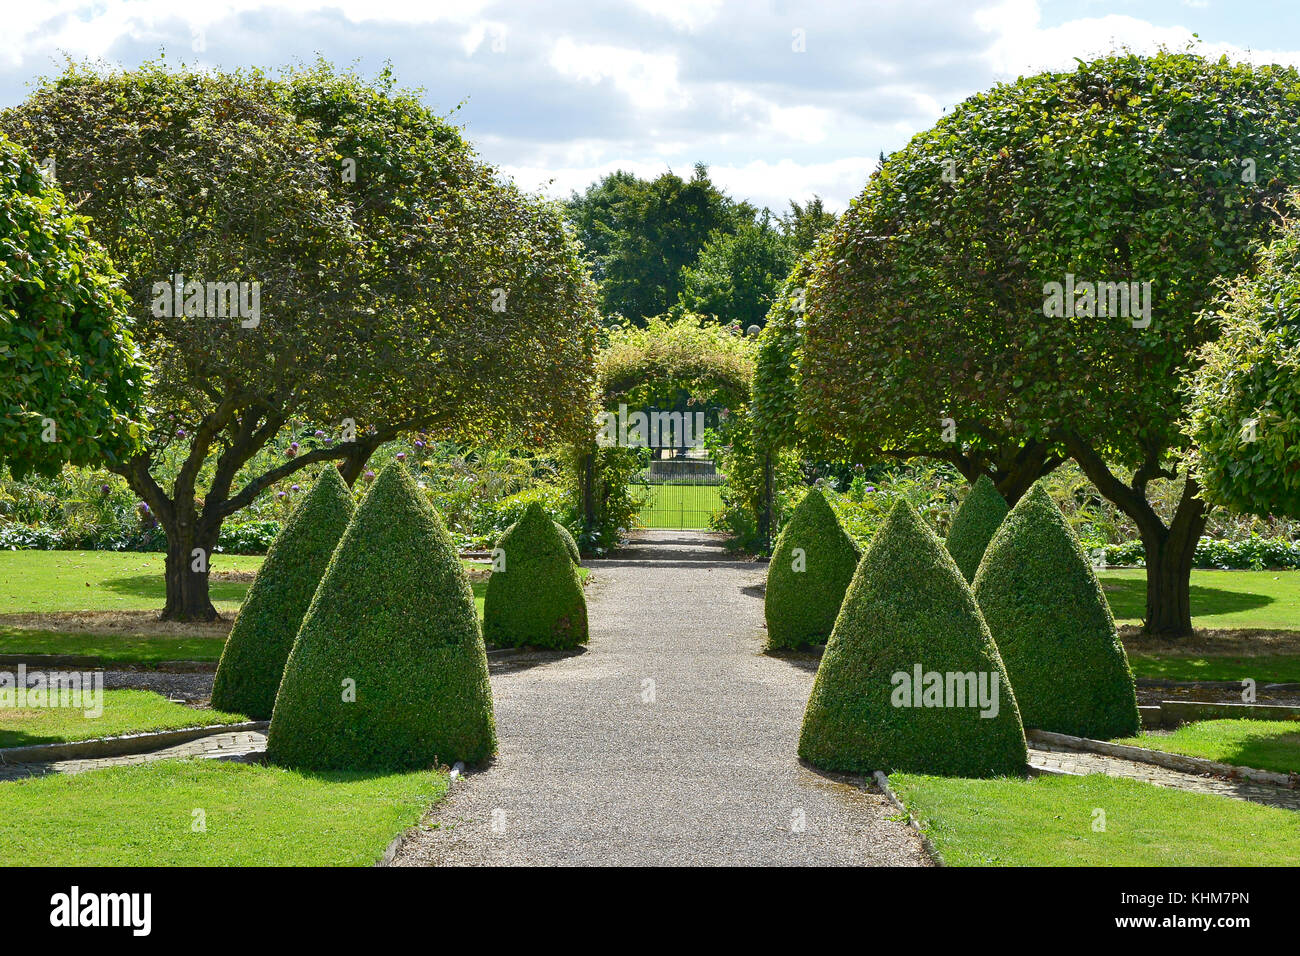 Clipped Box topiary bushes in a formal garden of a country house - Stock Image